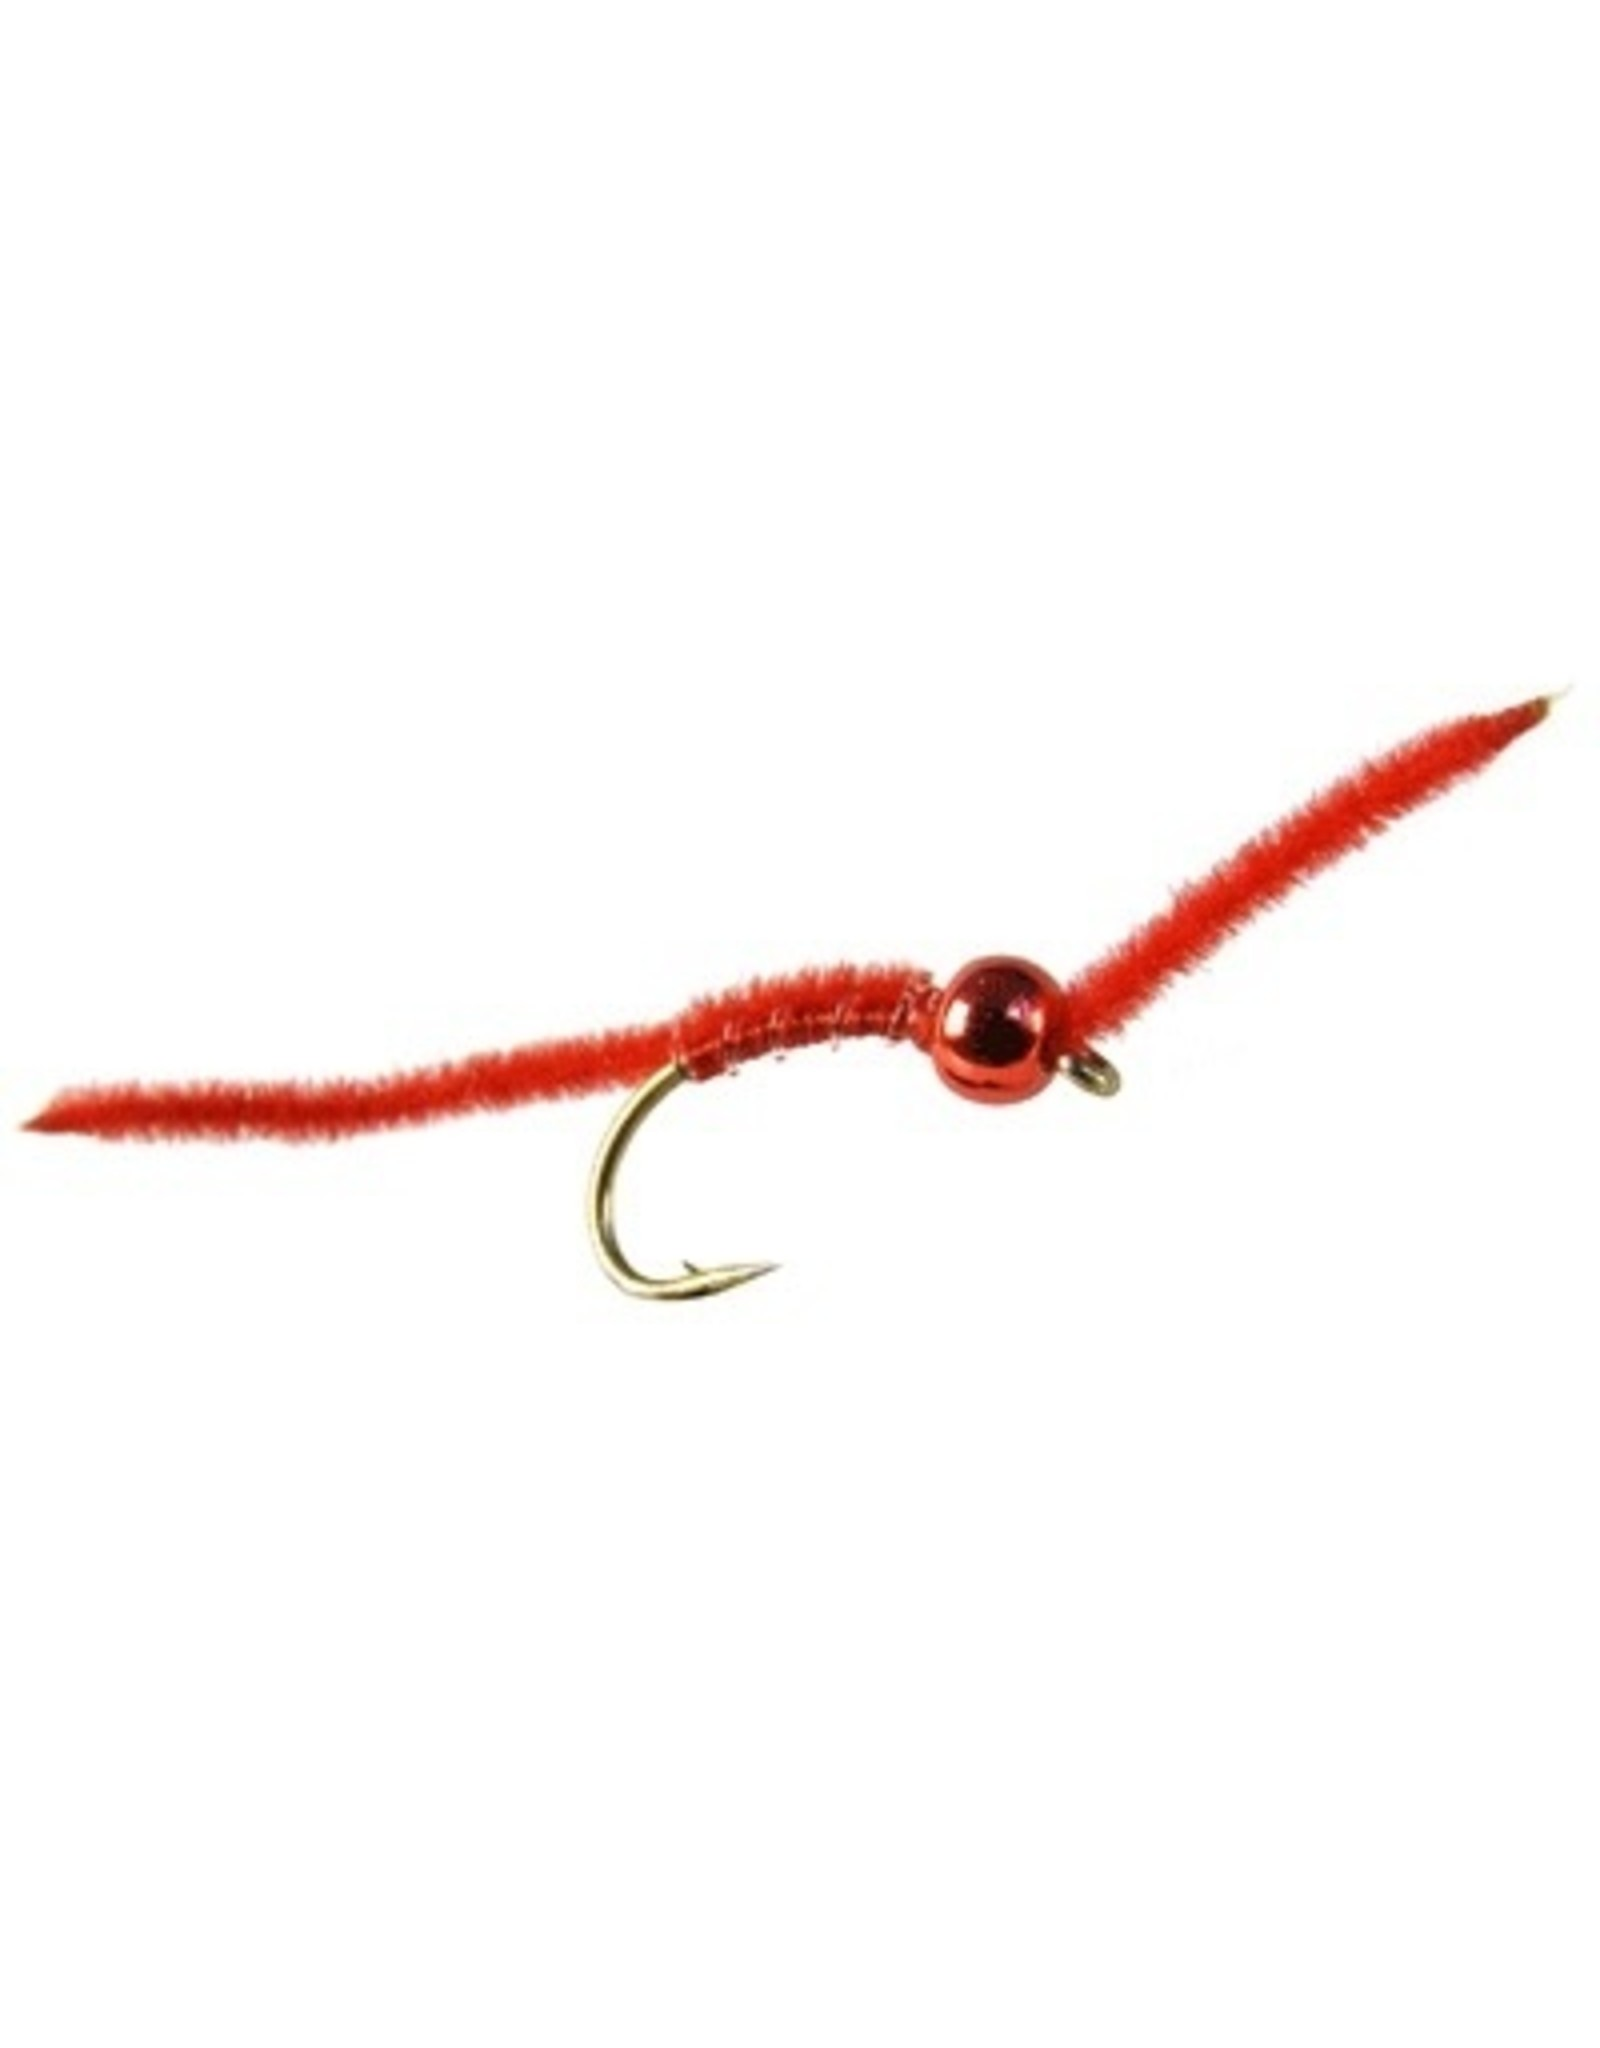 MFC Tungsten Micro Worm Red 16 (3 Pack)